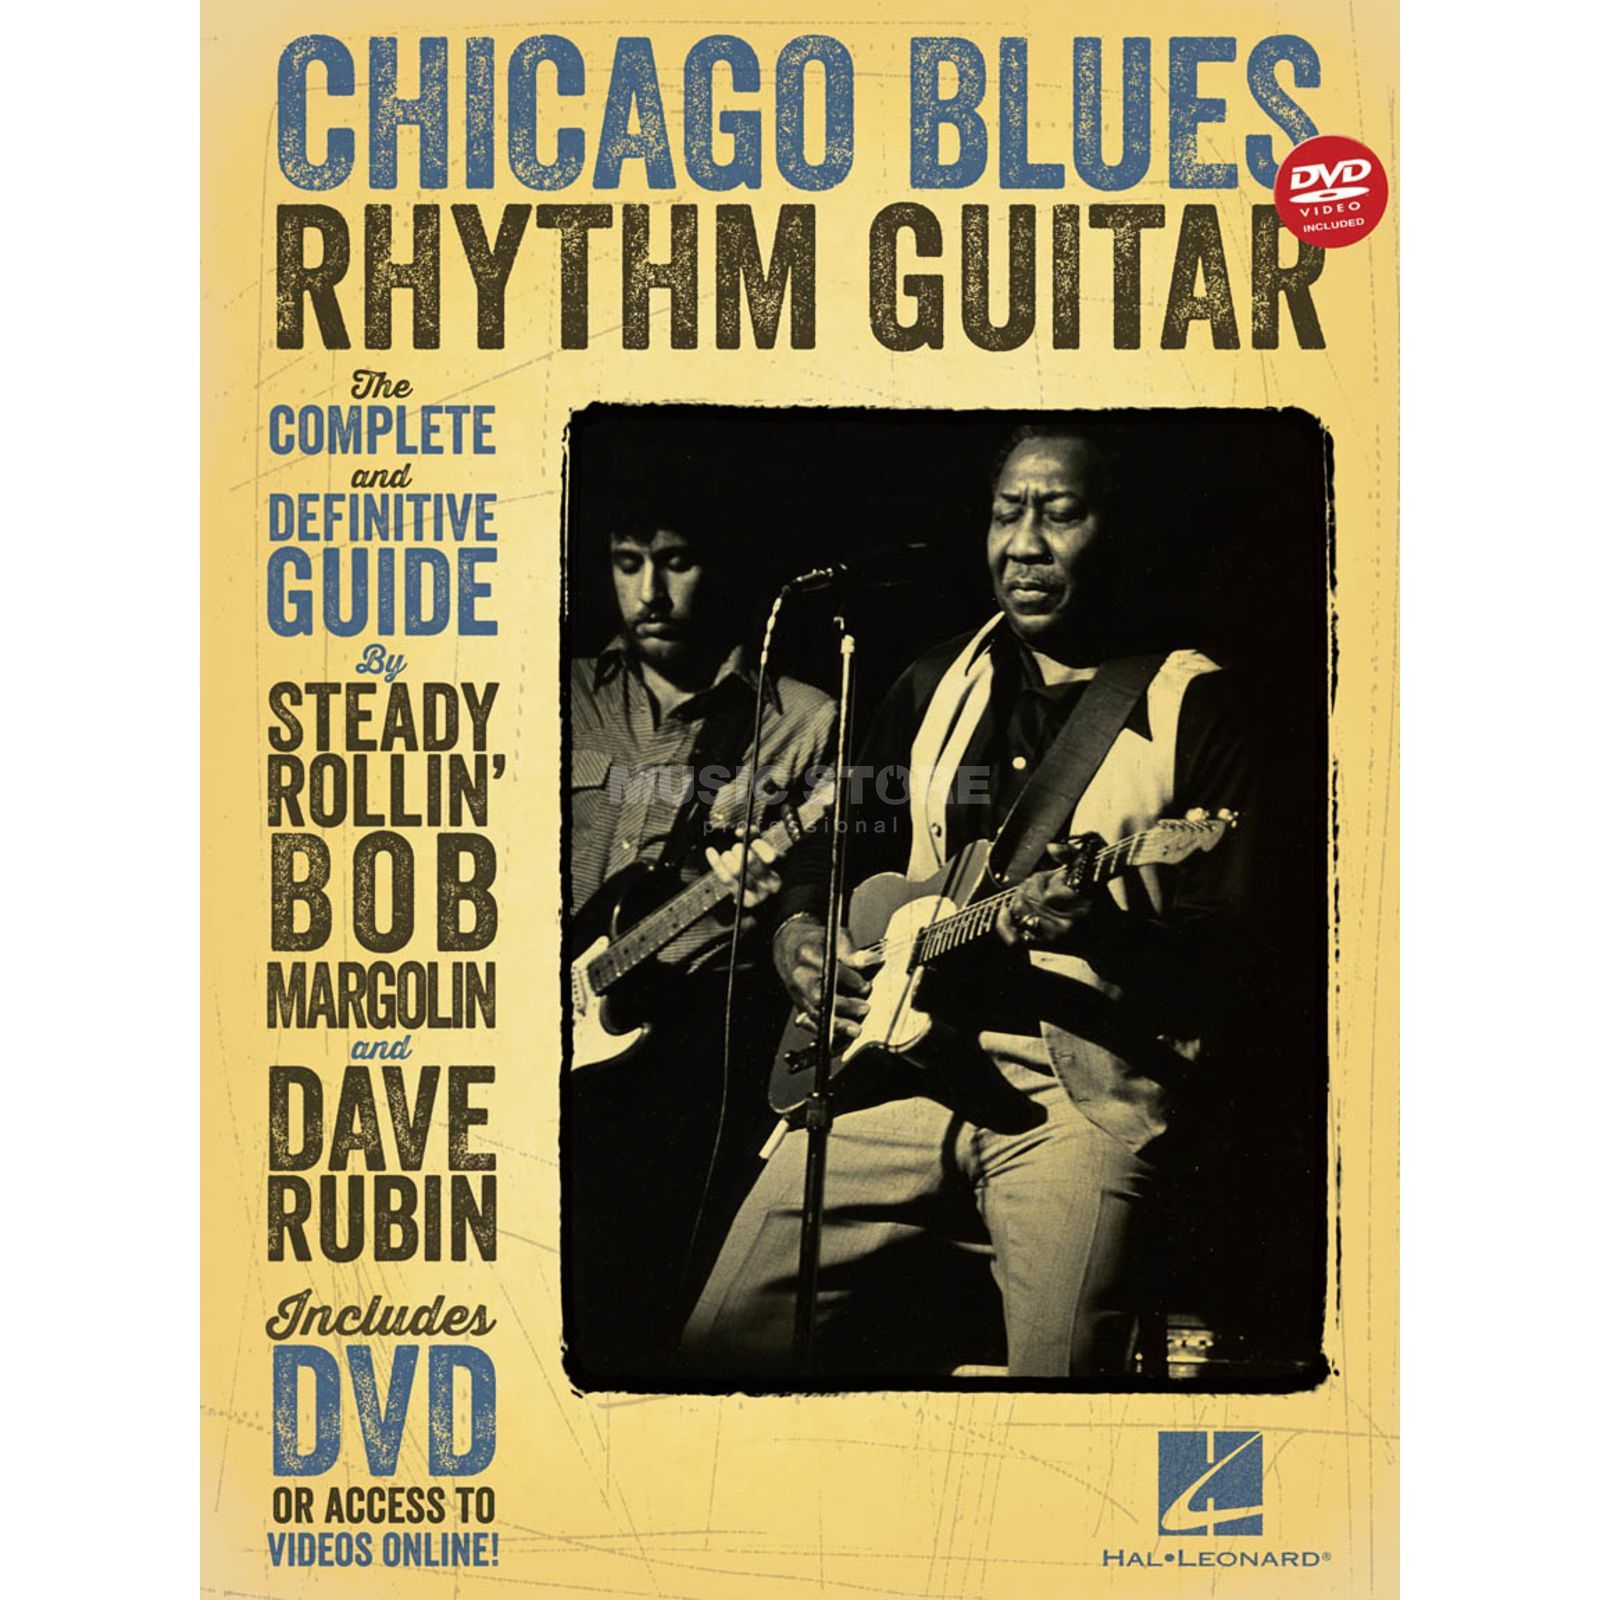 Hal Leonard Chicago Blues Rhythm Guitar: Complete Definitive Guide TAB Produktbillede